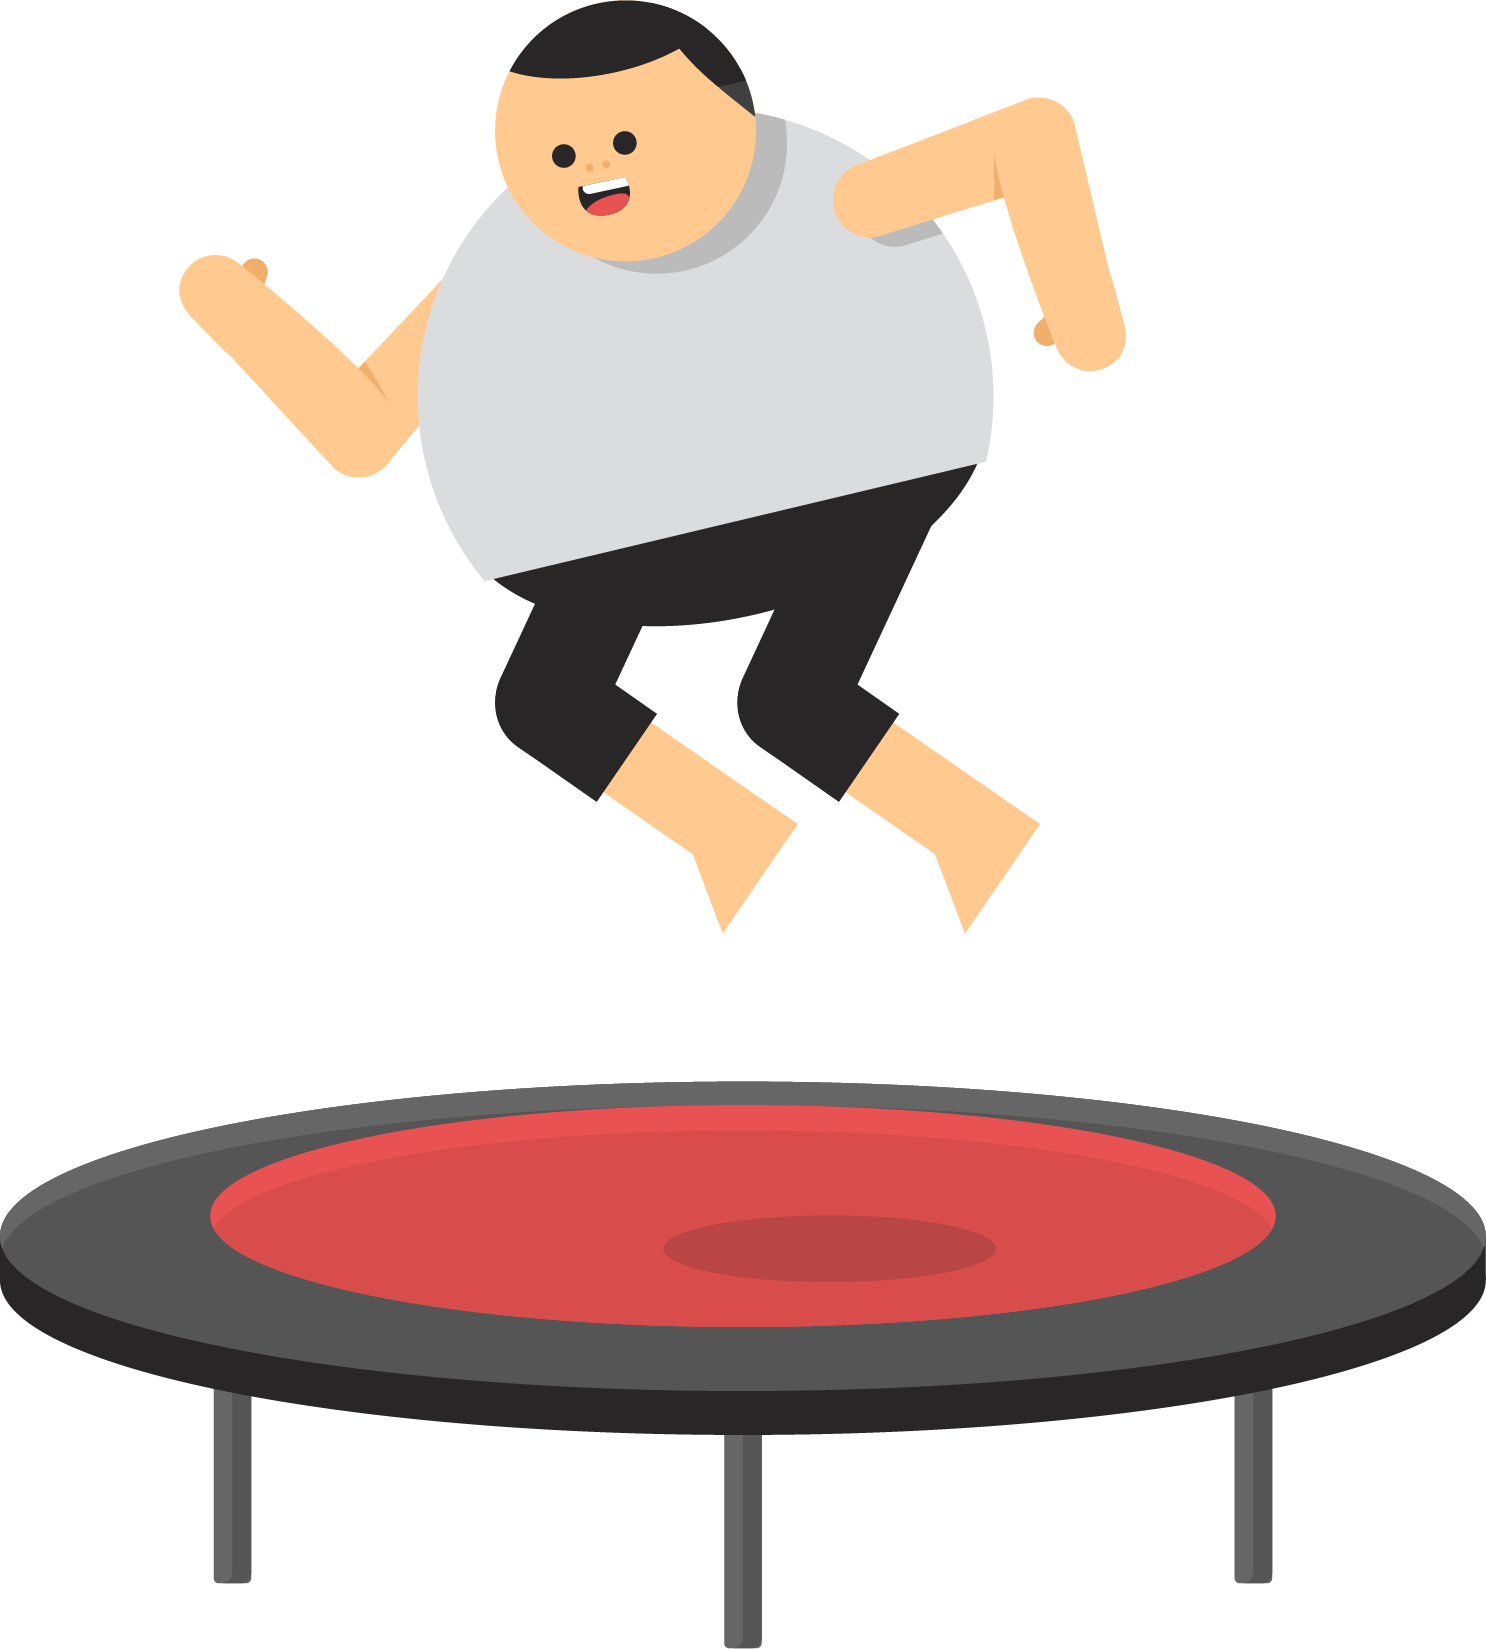 Fat guy basketball clipart vector stock Trampoline Icon - Fat playing trampoline 1486*1649 transprent Png ... vector stock